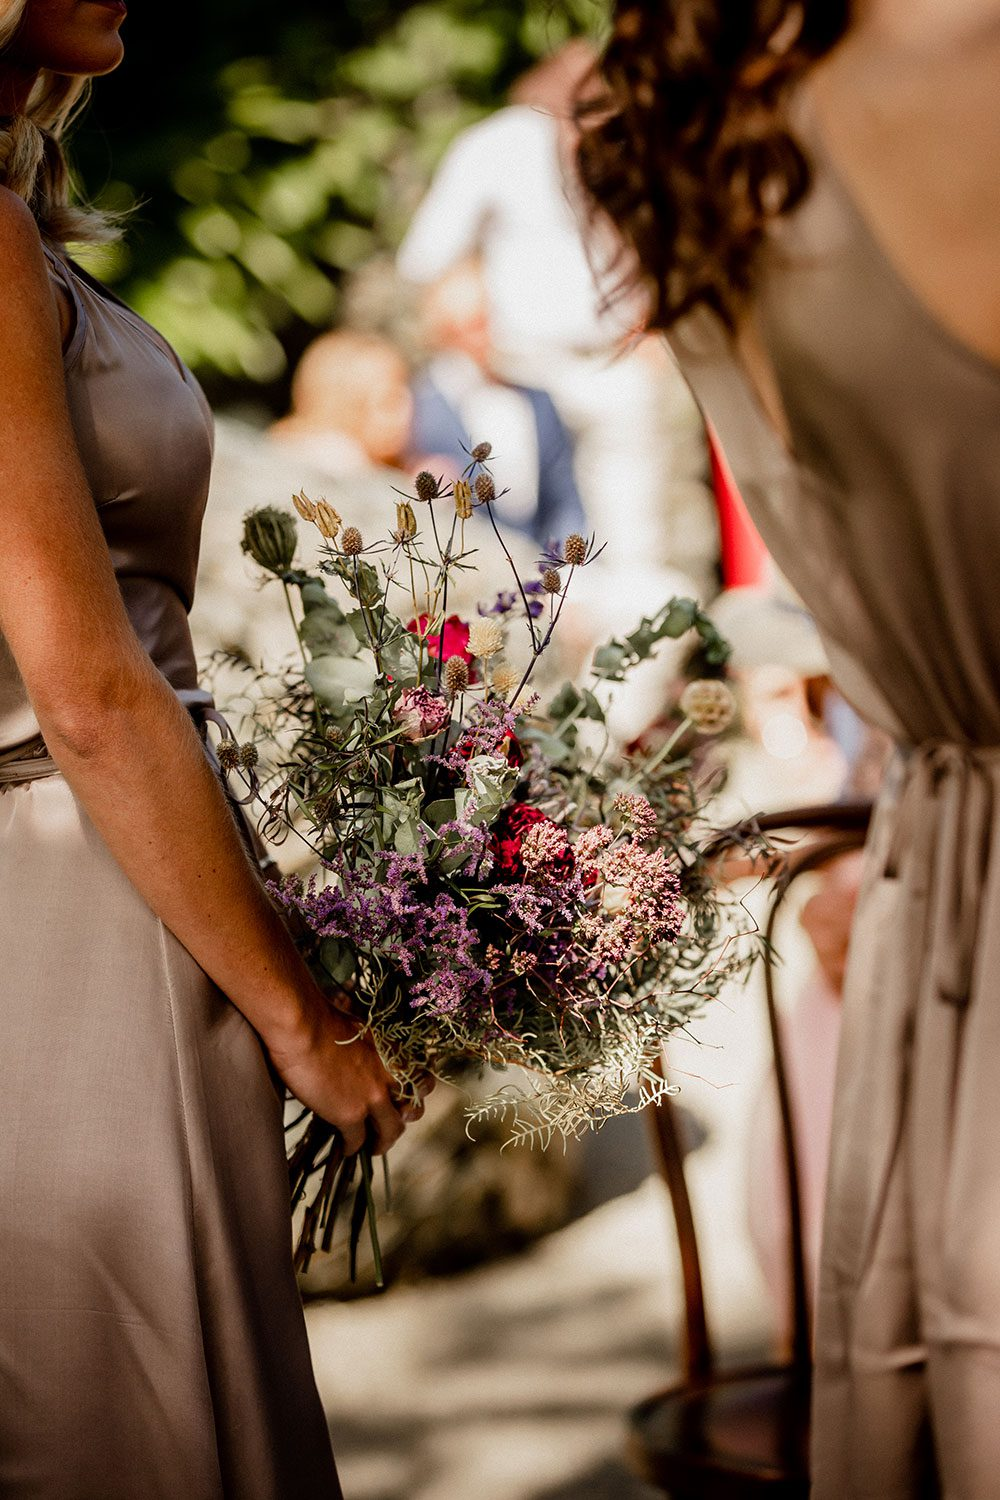 Emore and Hamish - Bridesmaid holding bouquet